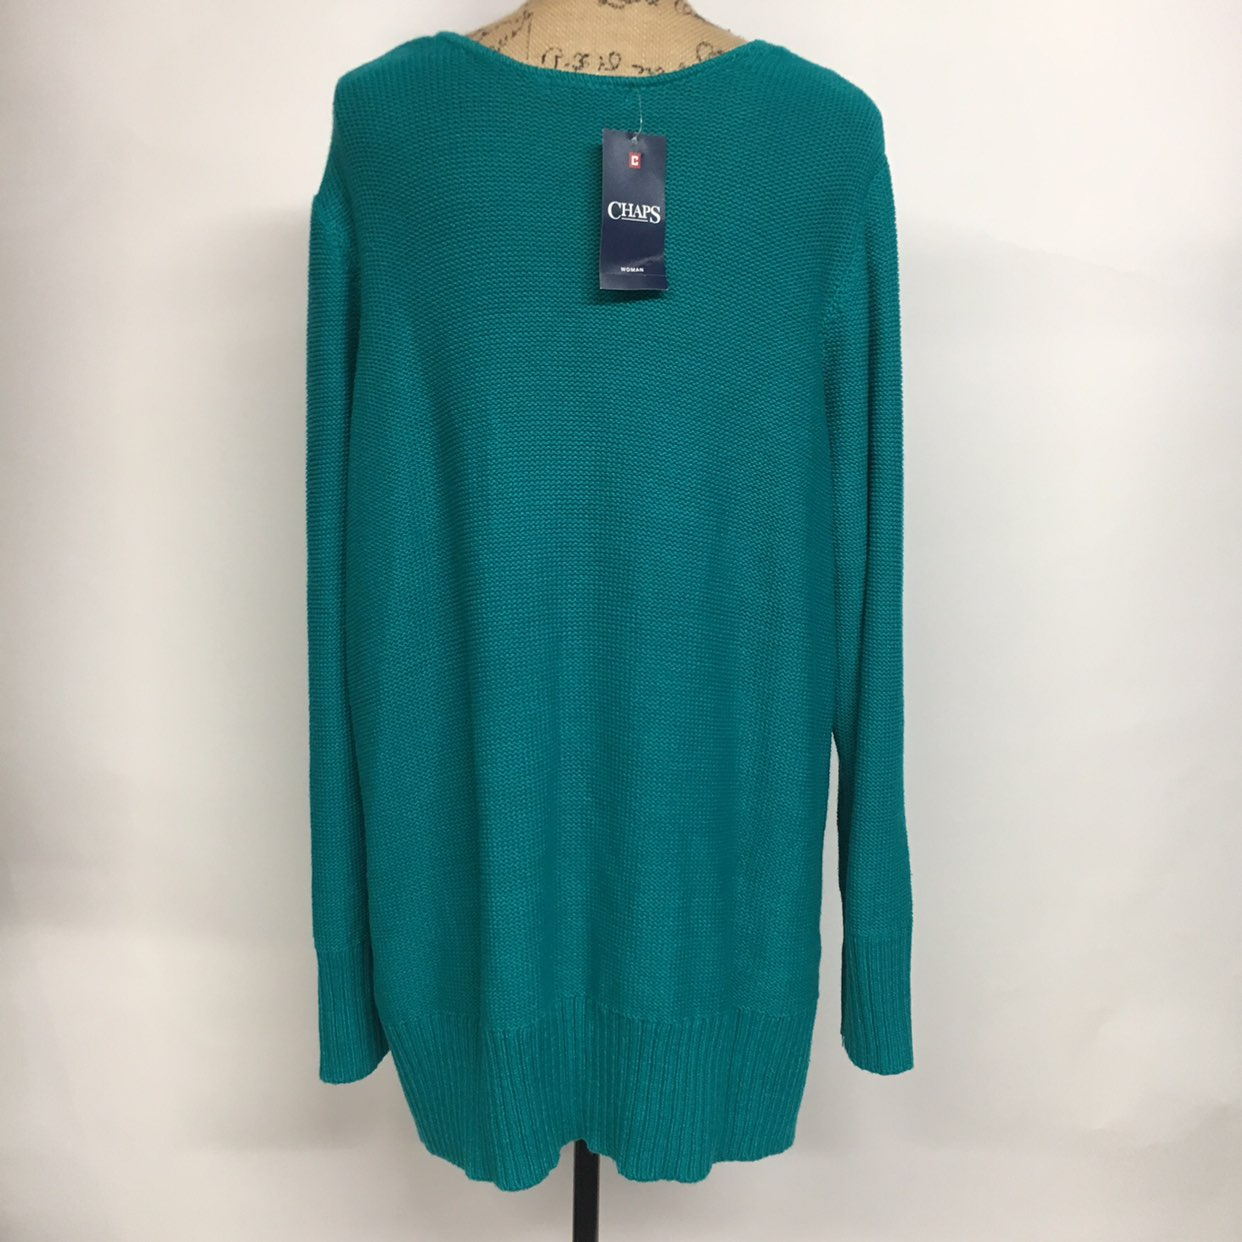 CHAPS Teal Cable Knit V-neck Sweater - Mercari: BUY & SELL THINGS ...